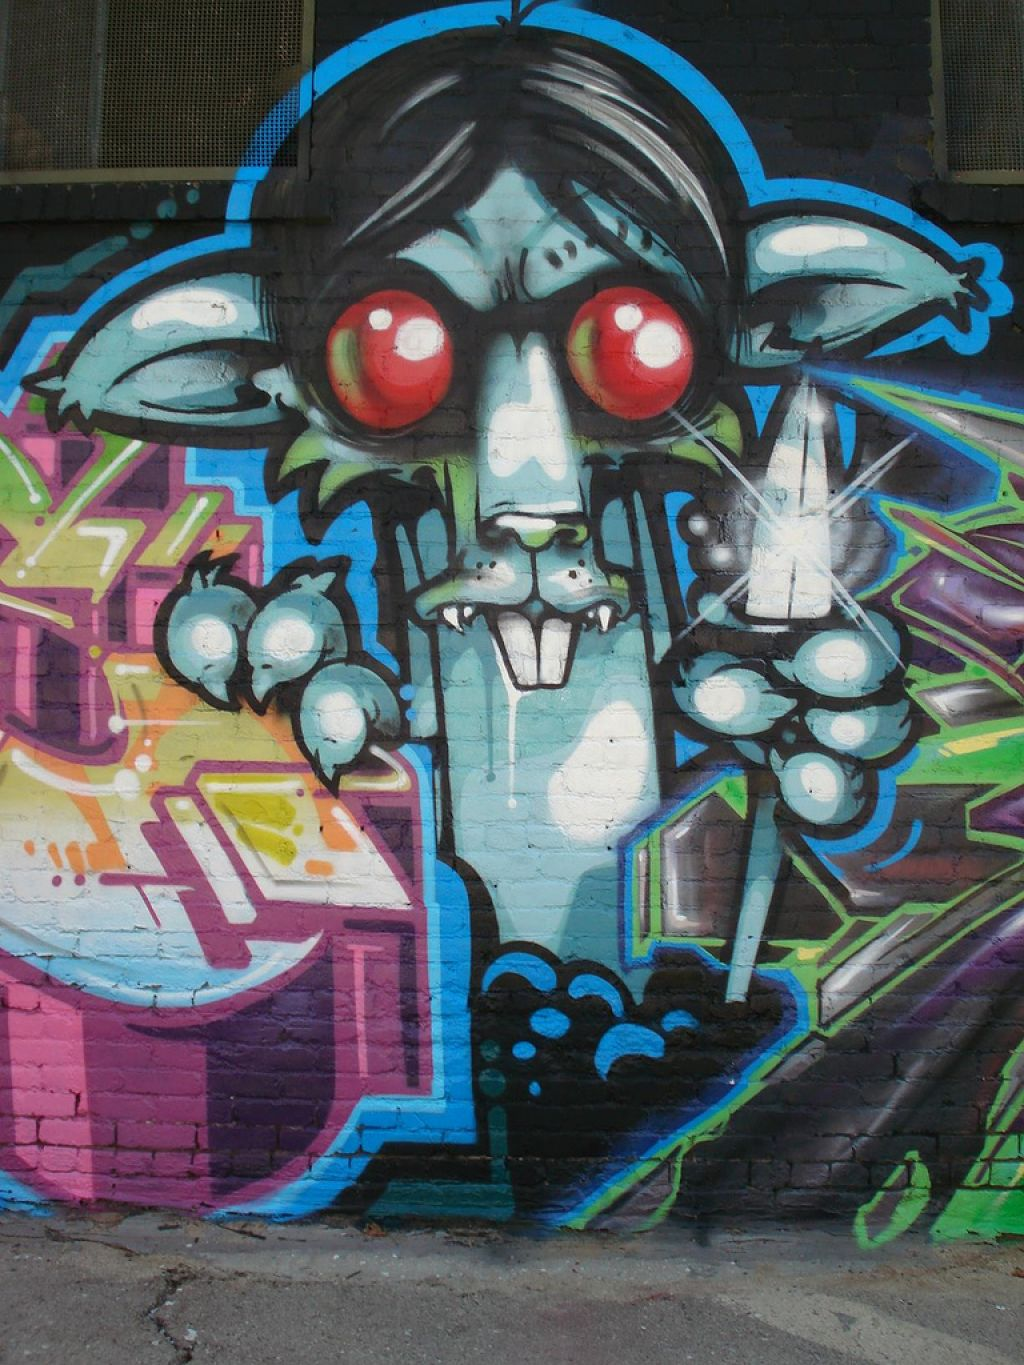 graffiti art17 Street Art and Graffiti in Los Angeles